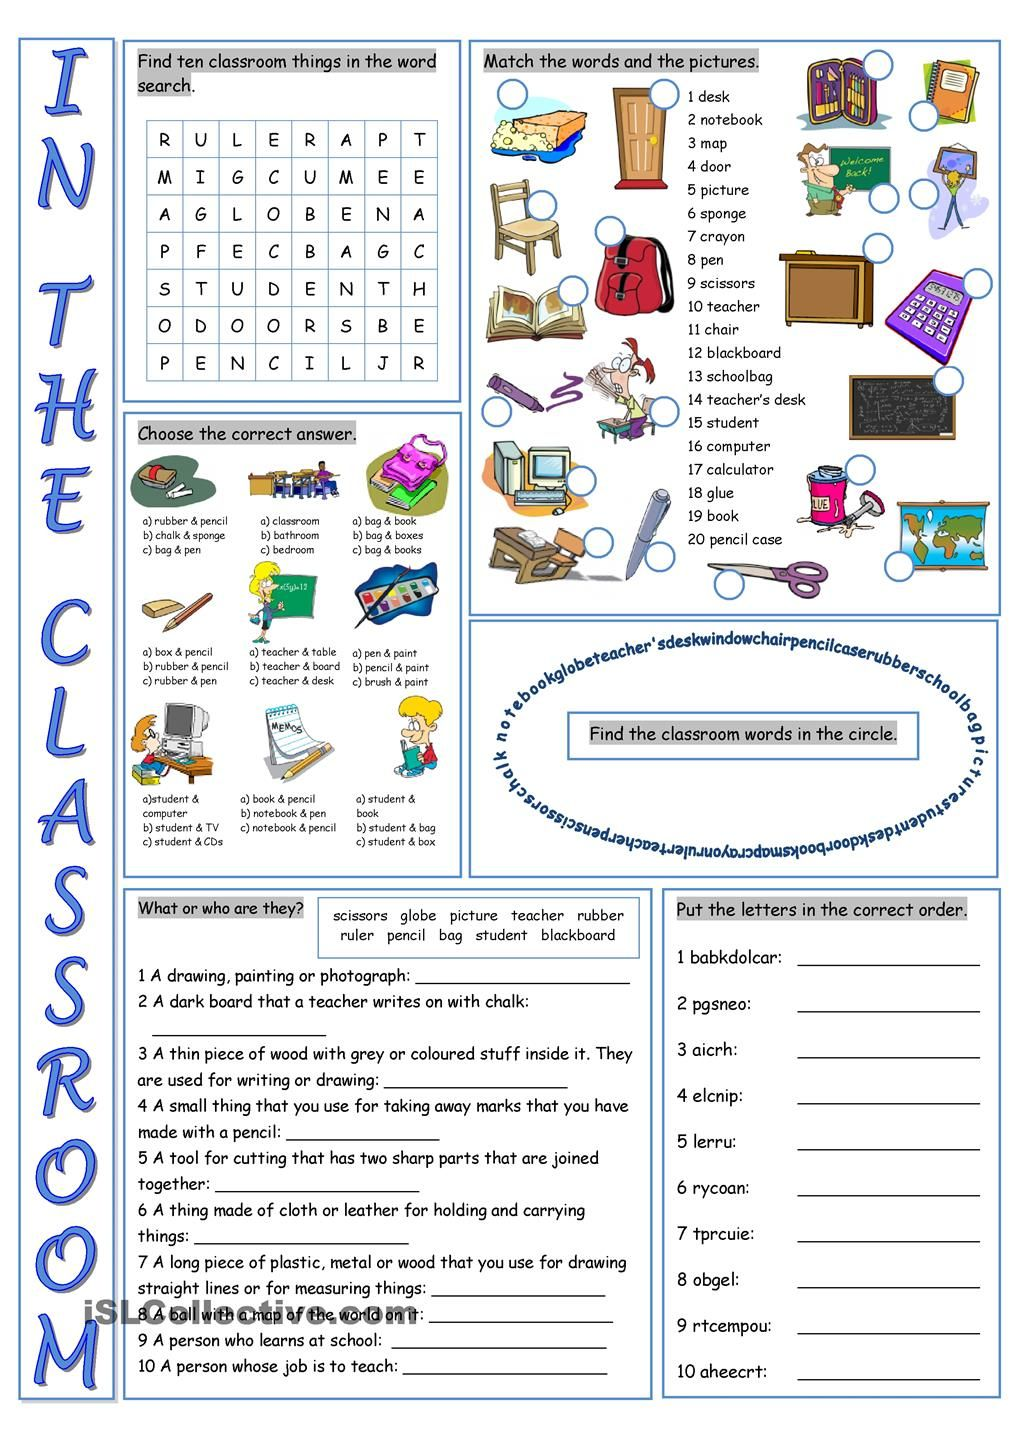 In The Classroom Vocabulary Exercises English In 2018 Pinterest